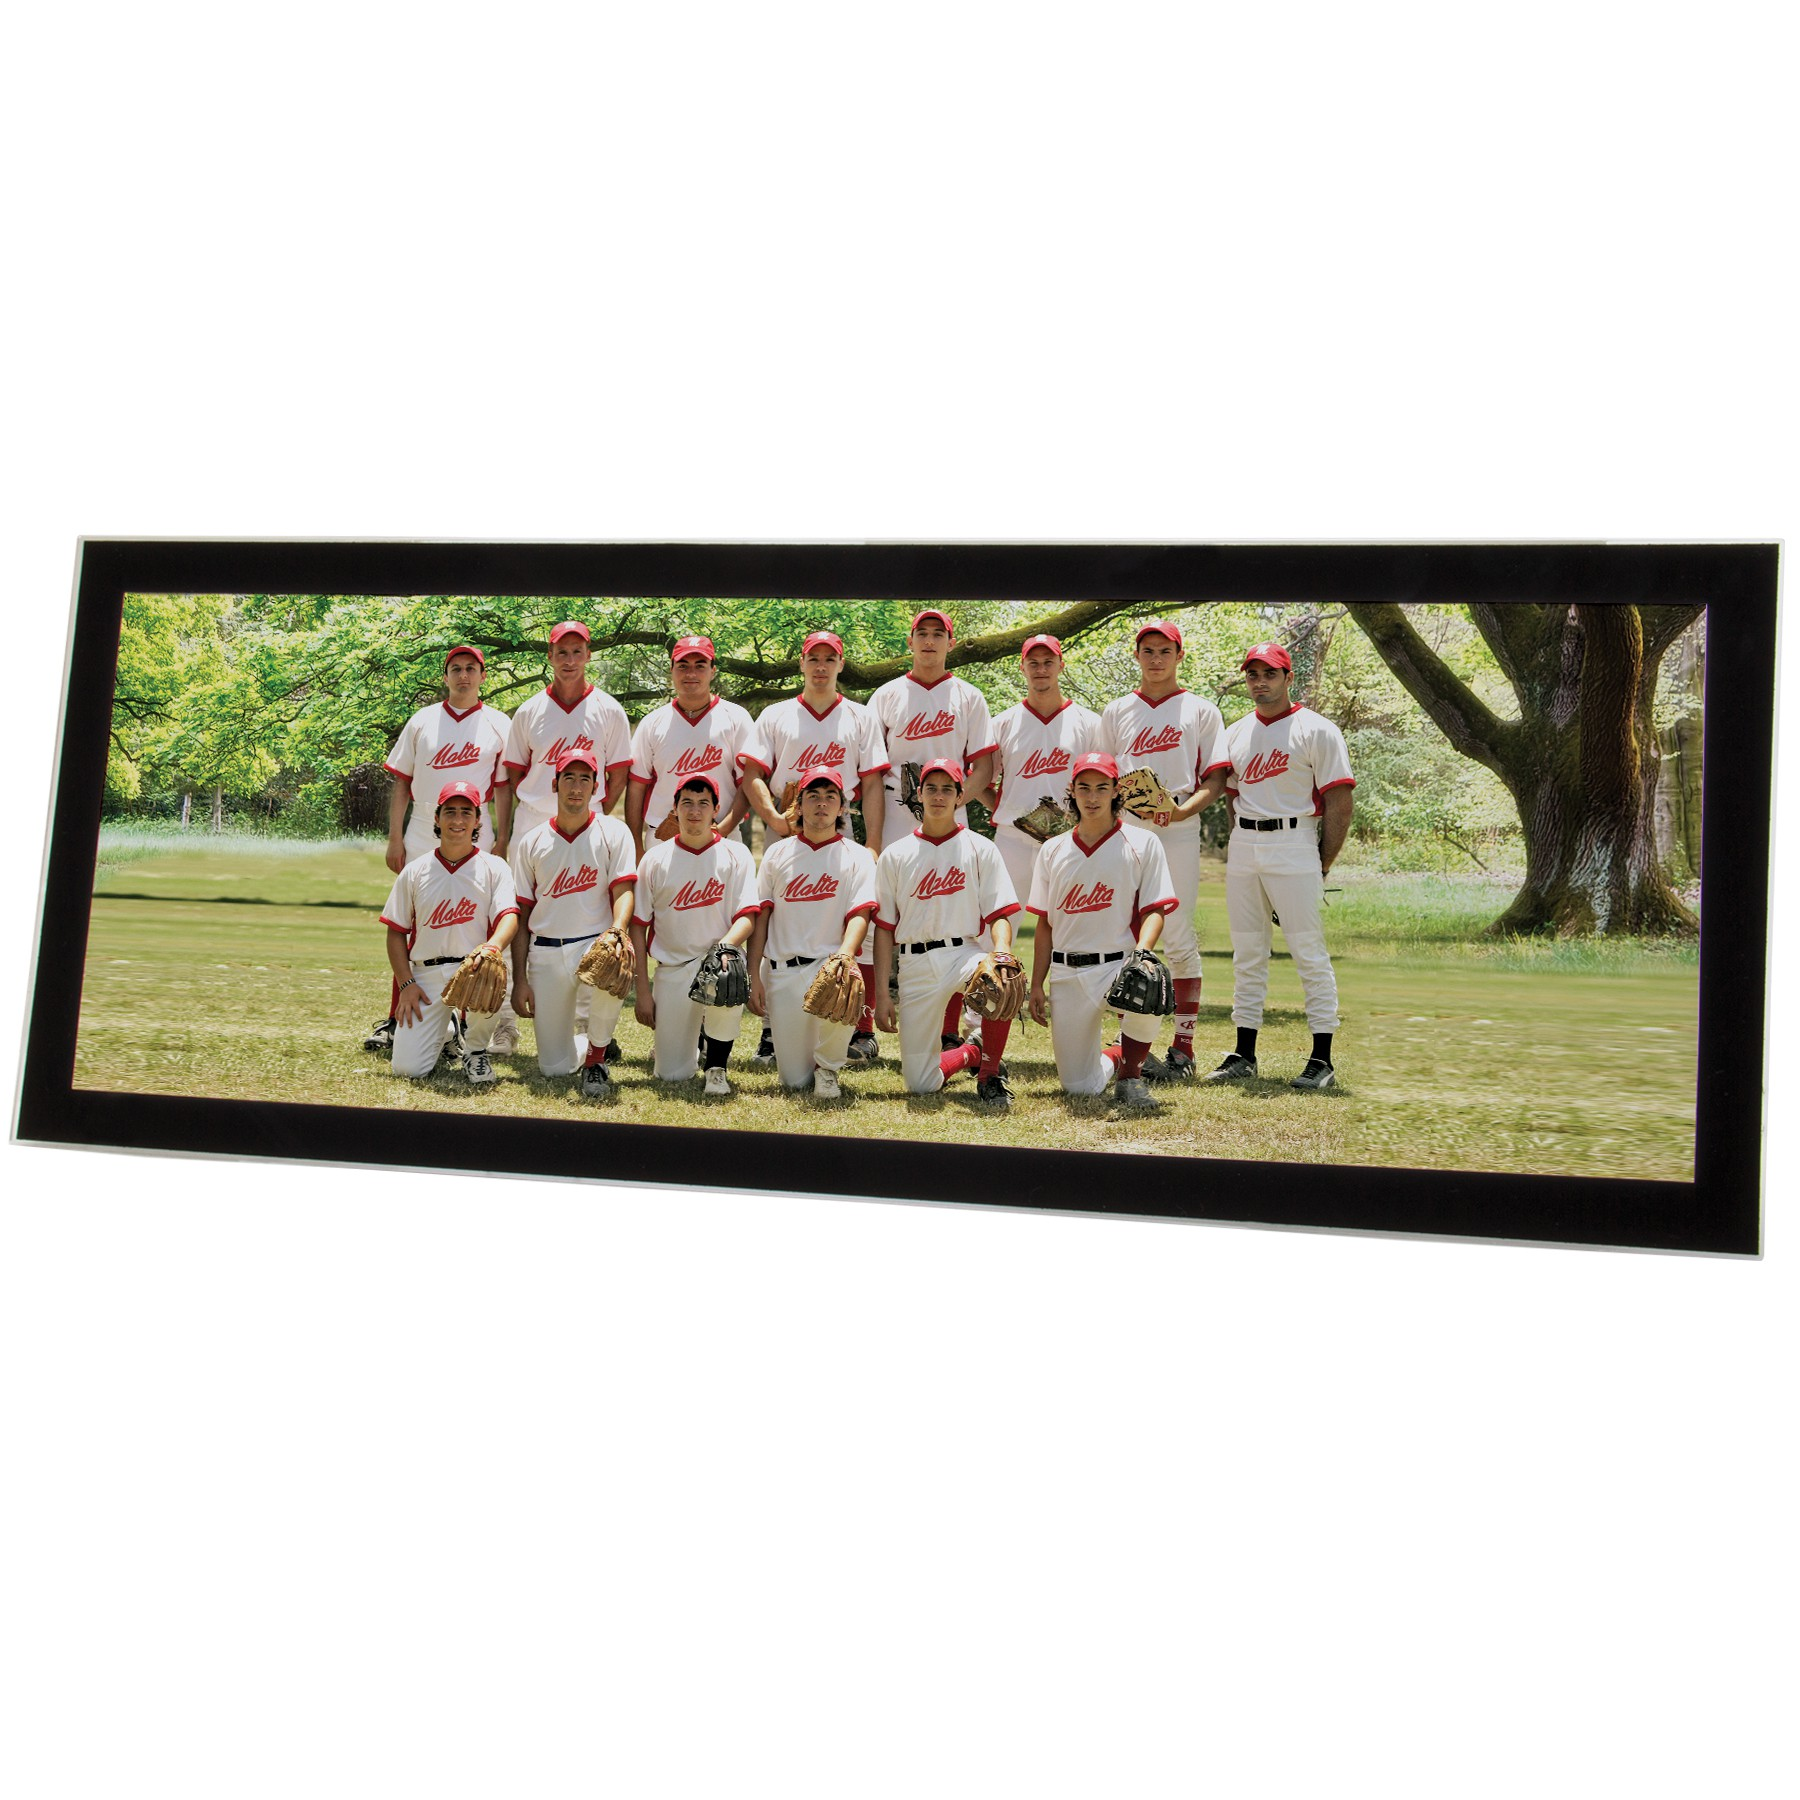 Neil Enterprises Wholesale Panoramic Picture Frames 24x8